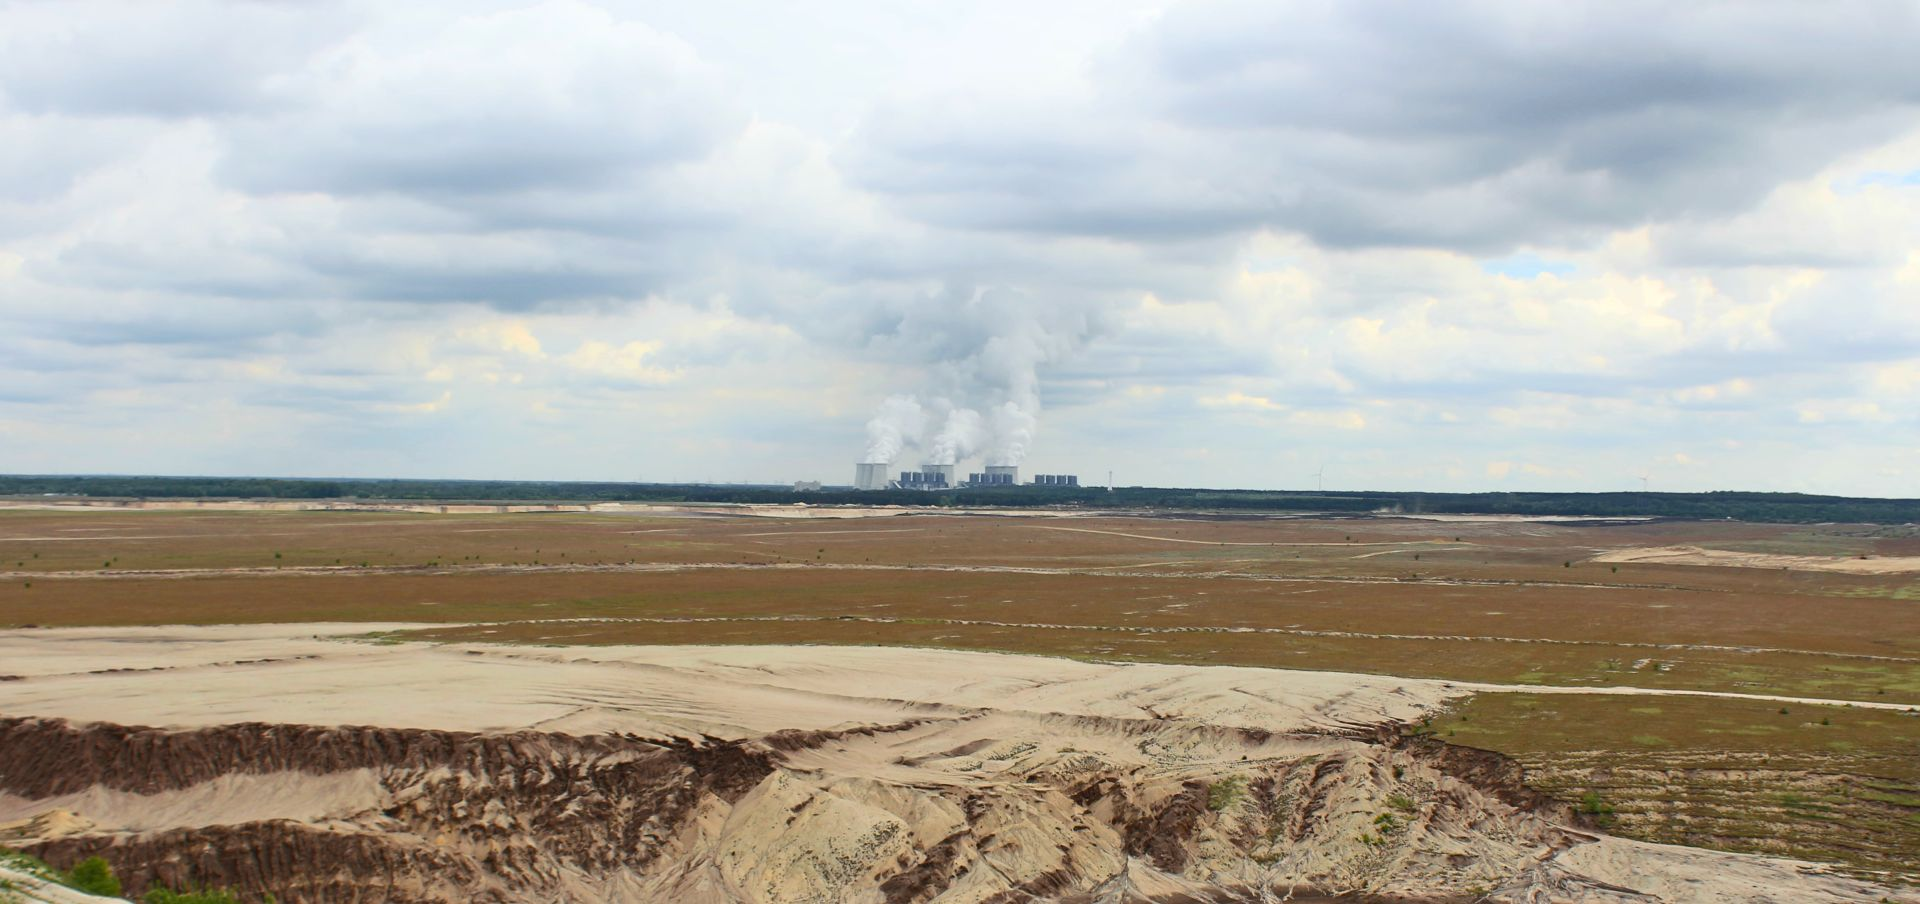 panorama of old coal mine with cooling towers in the background